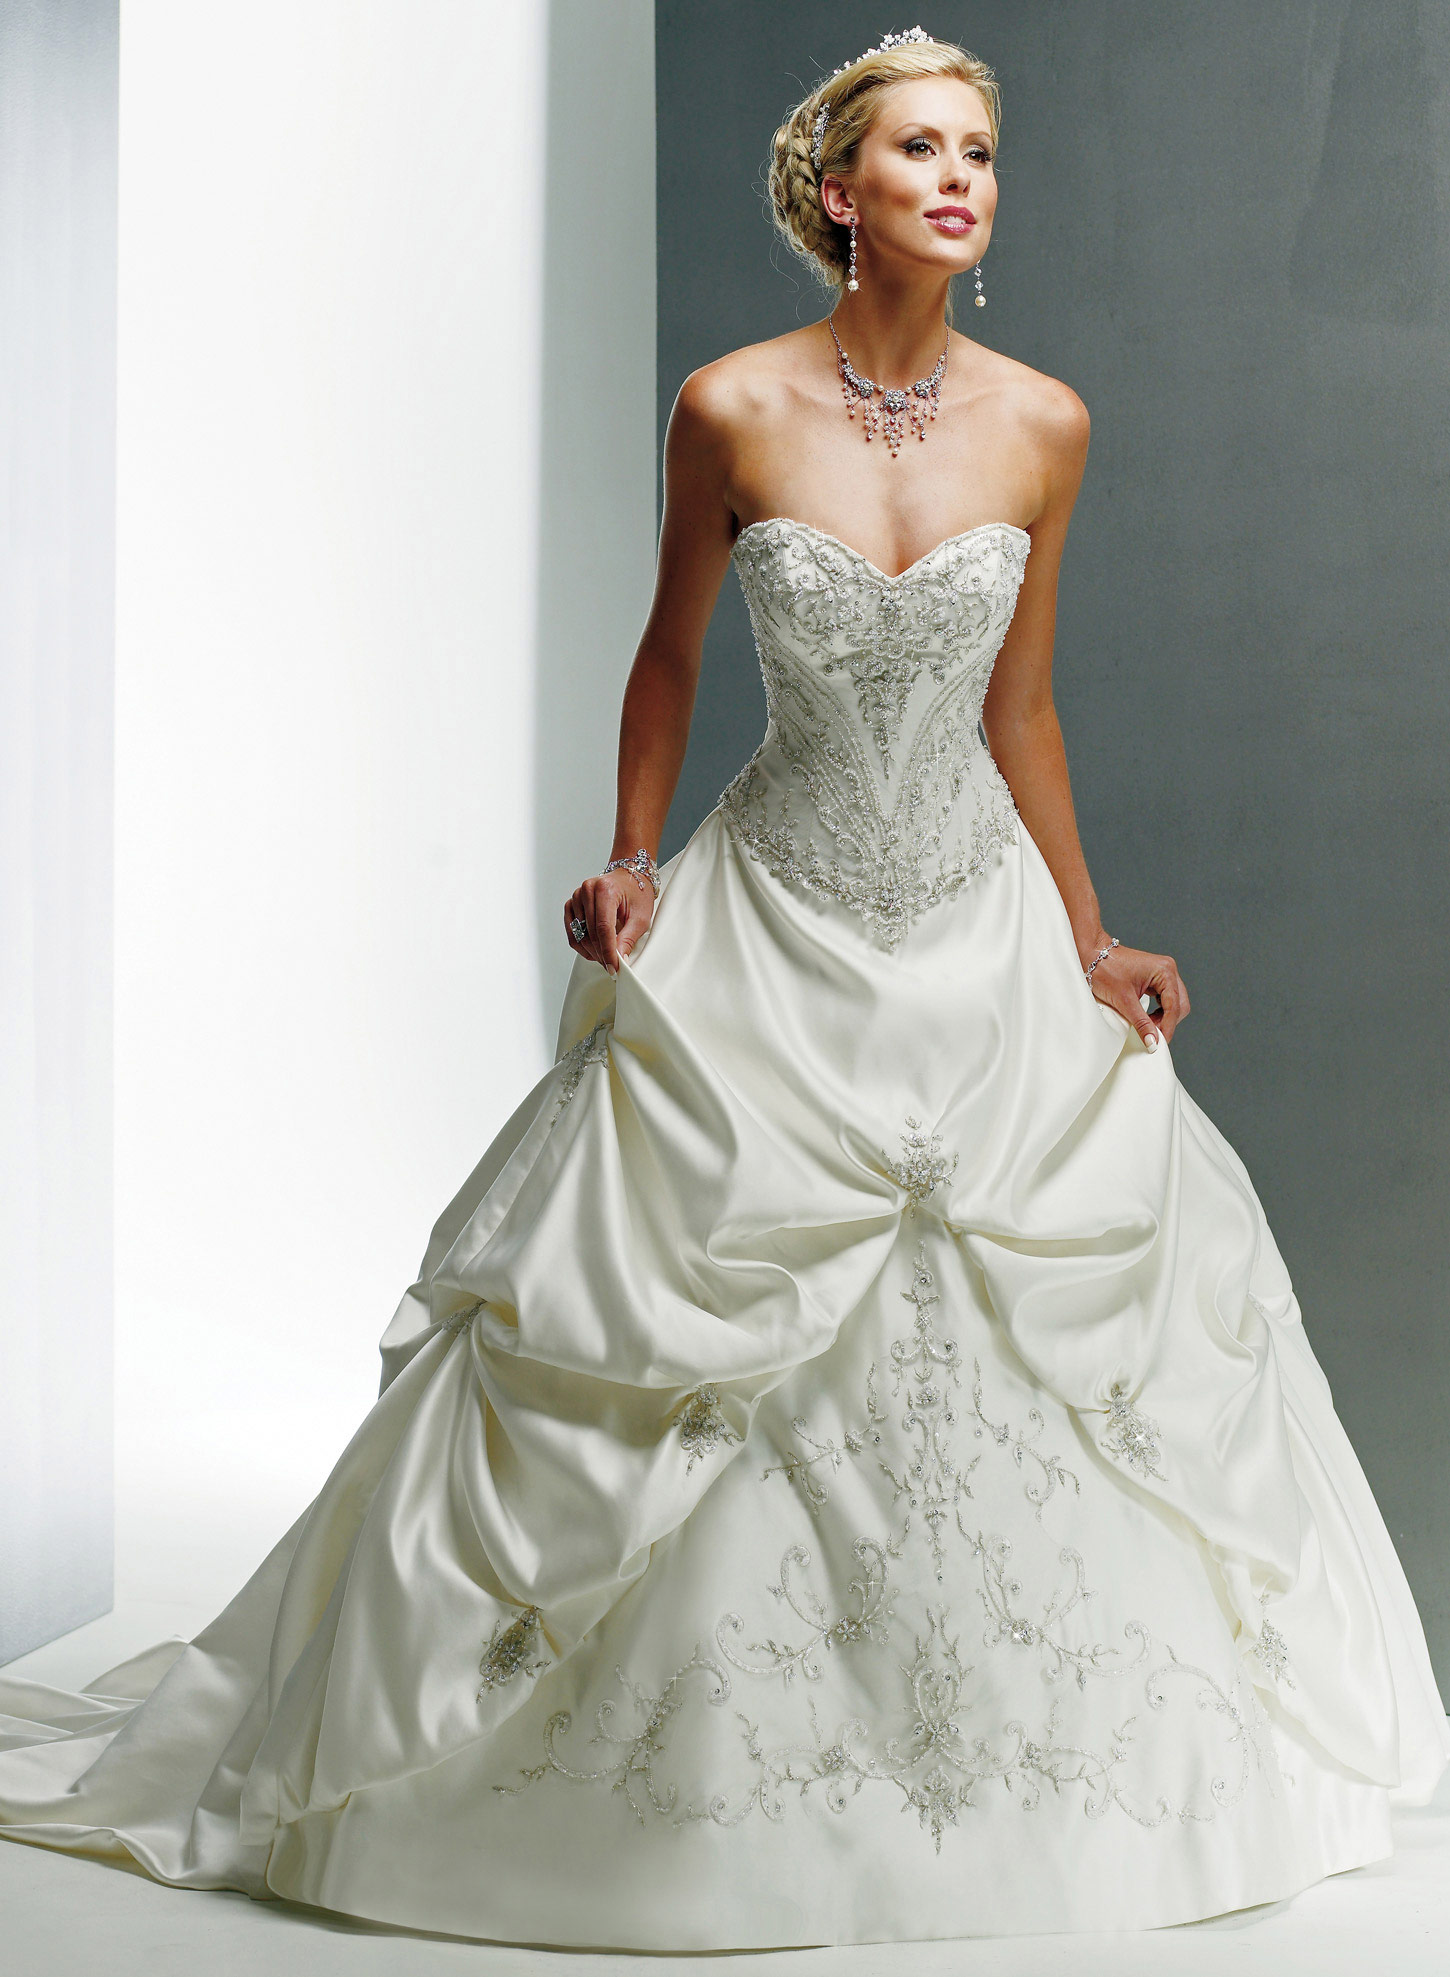 Bridal Gown - Maggie Sotero